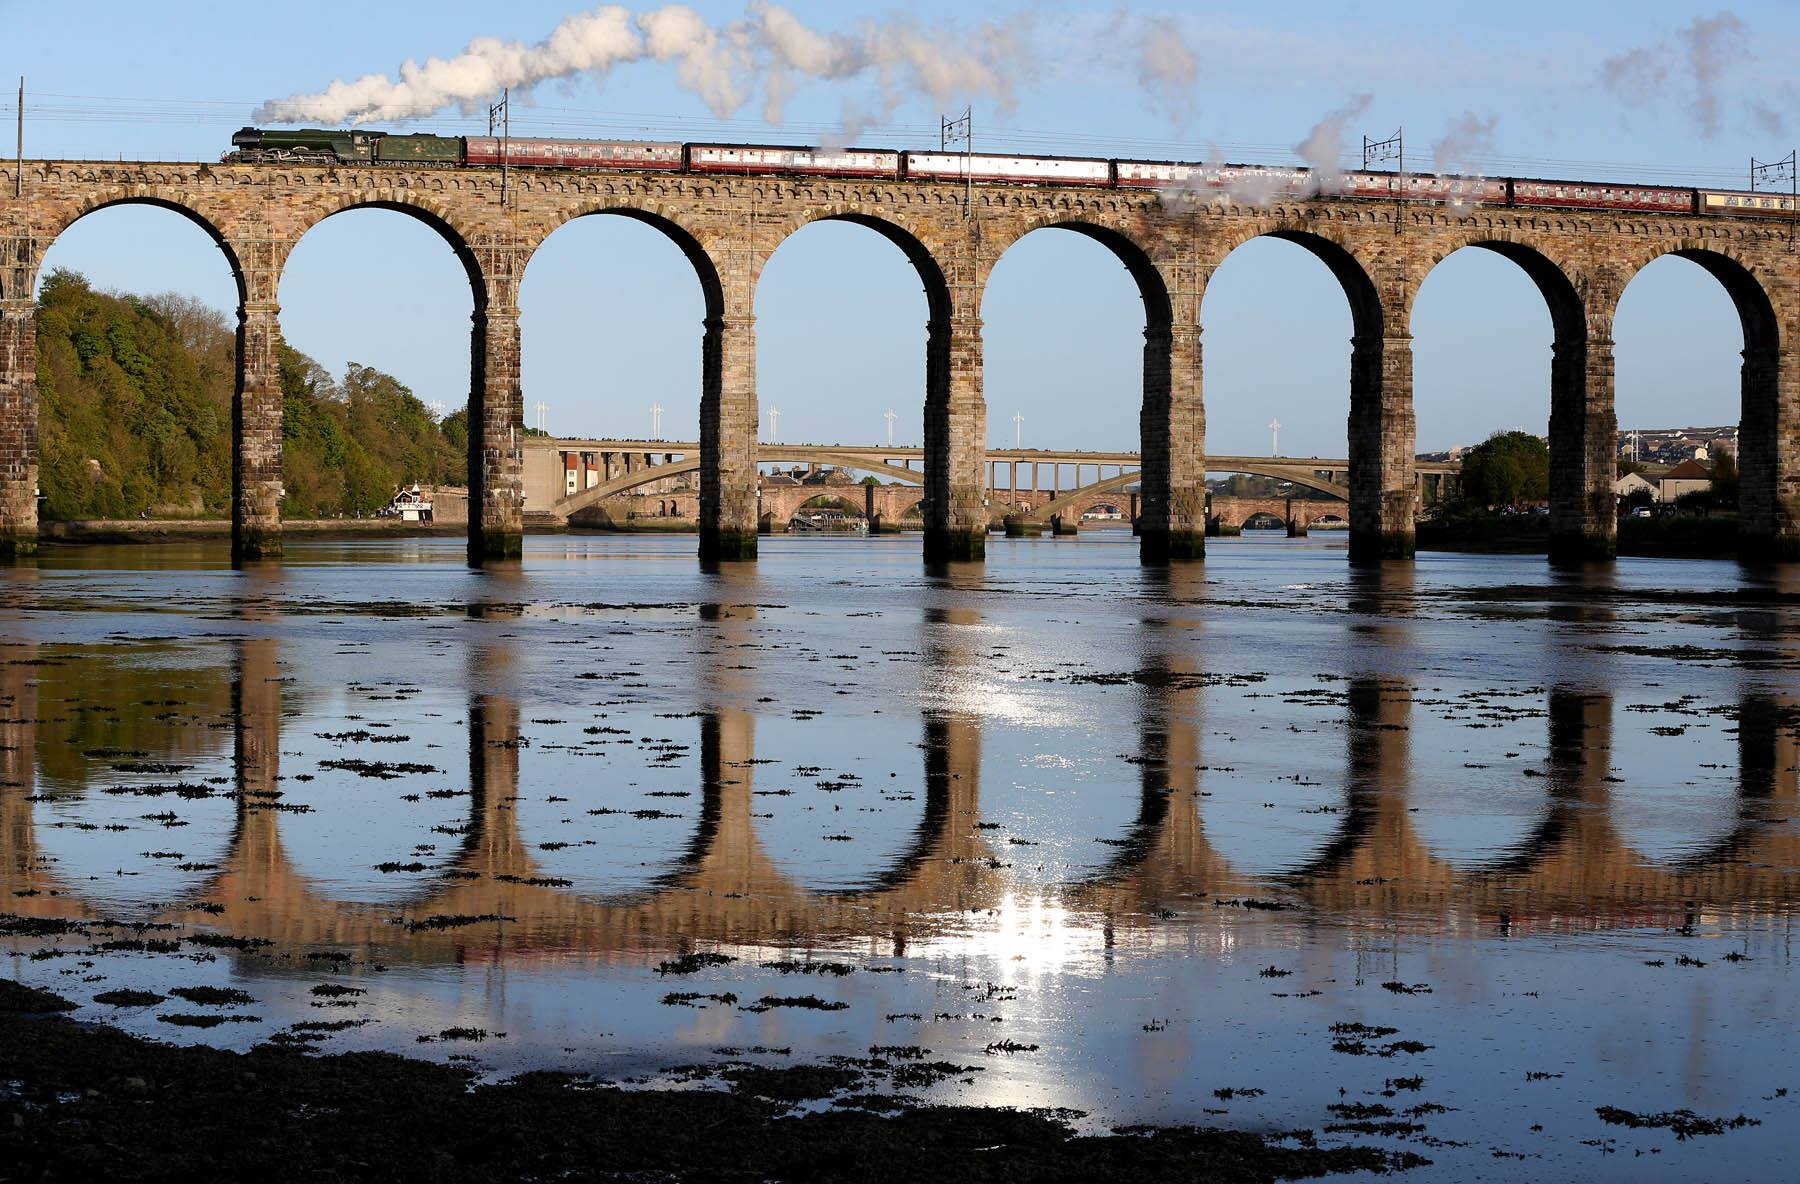 Flying Scotsman and Royal Border Bridge, Berwick upon Tweed. Photo: Chris Booth